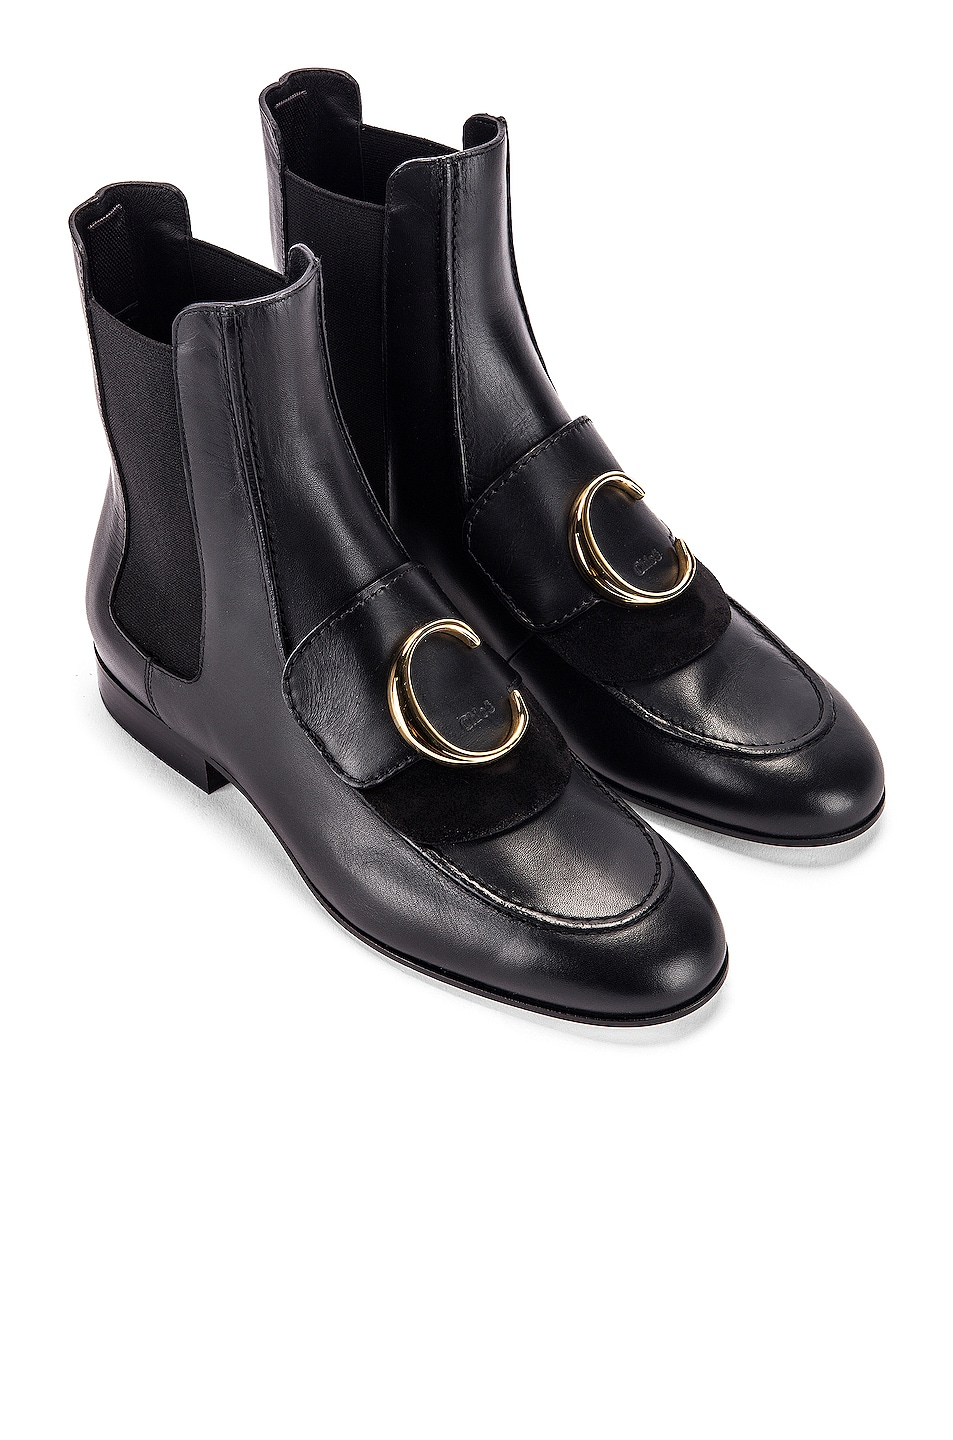 Image 1 of Chloe C Ankle Boots in Black